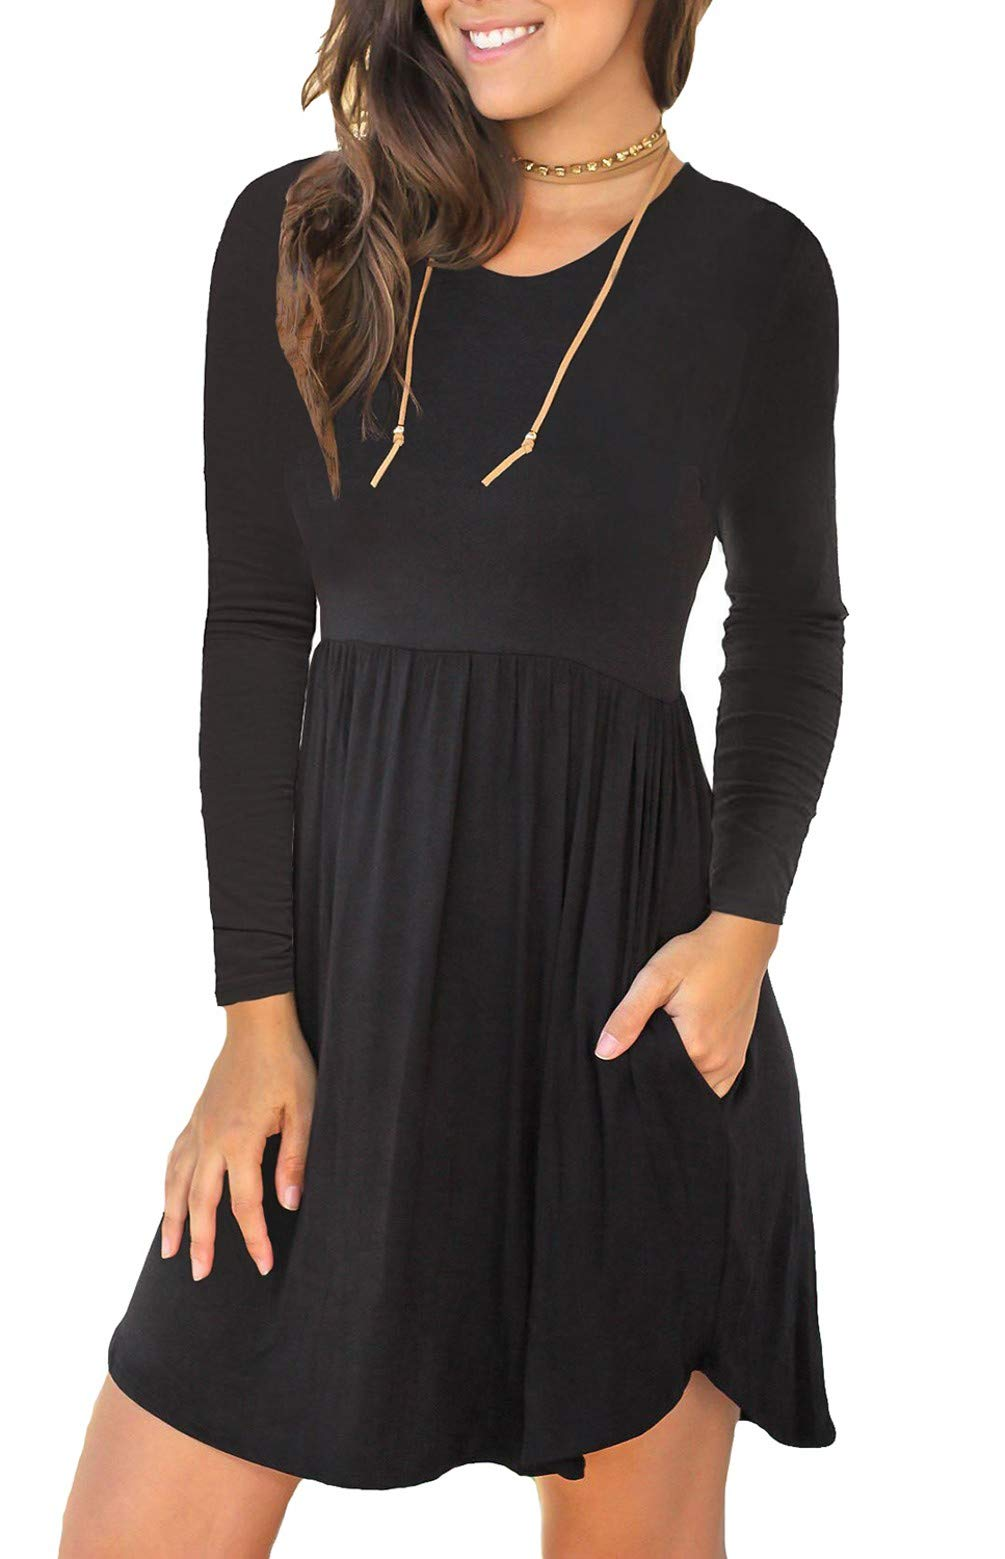 Unbranded* Women's Long Sleeve Loose Plain Dresses Casual Short Dress with Pockets Black Large - wiihuu